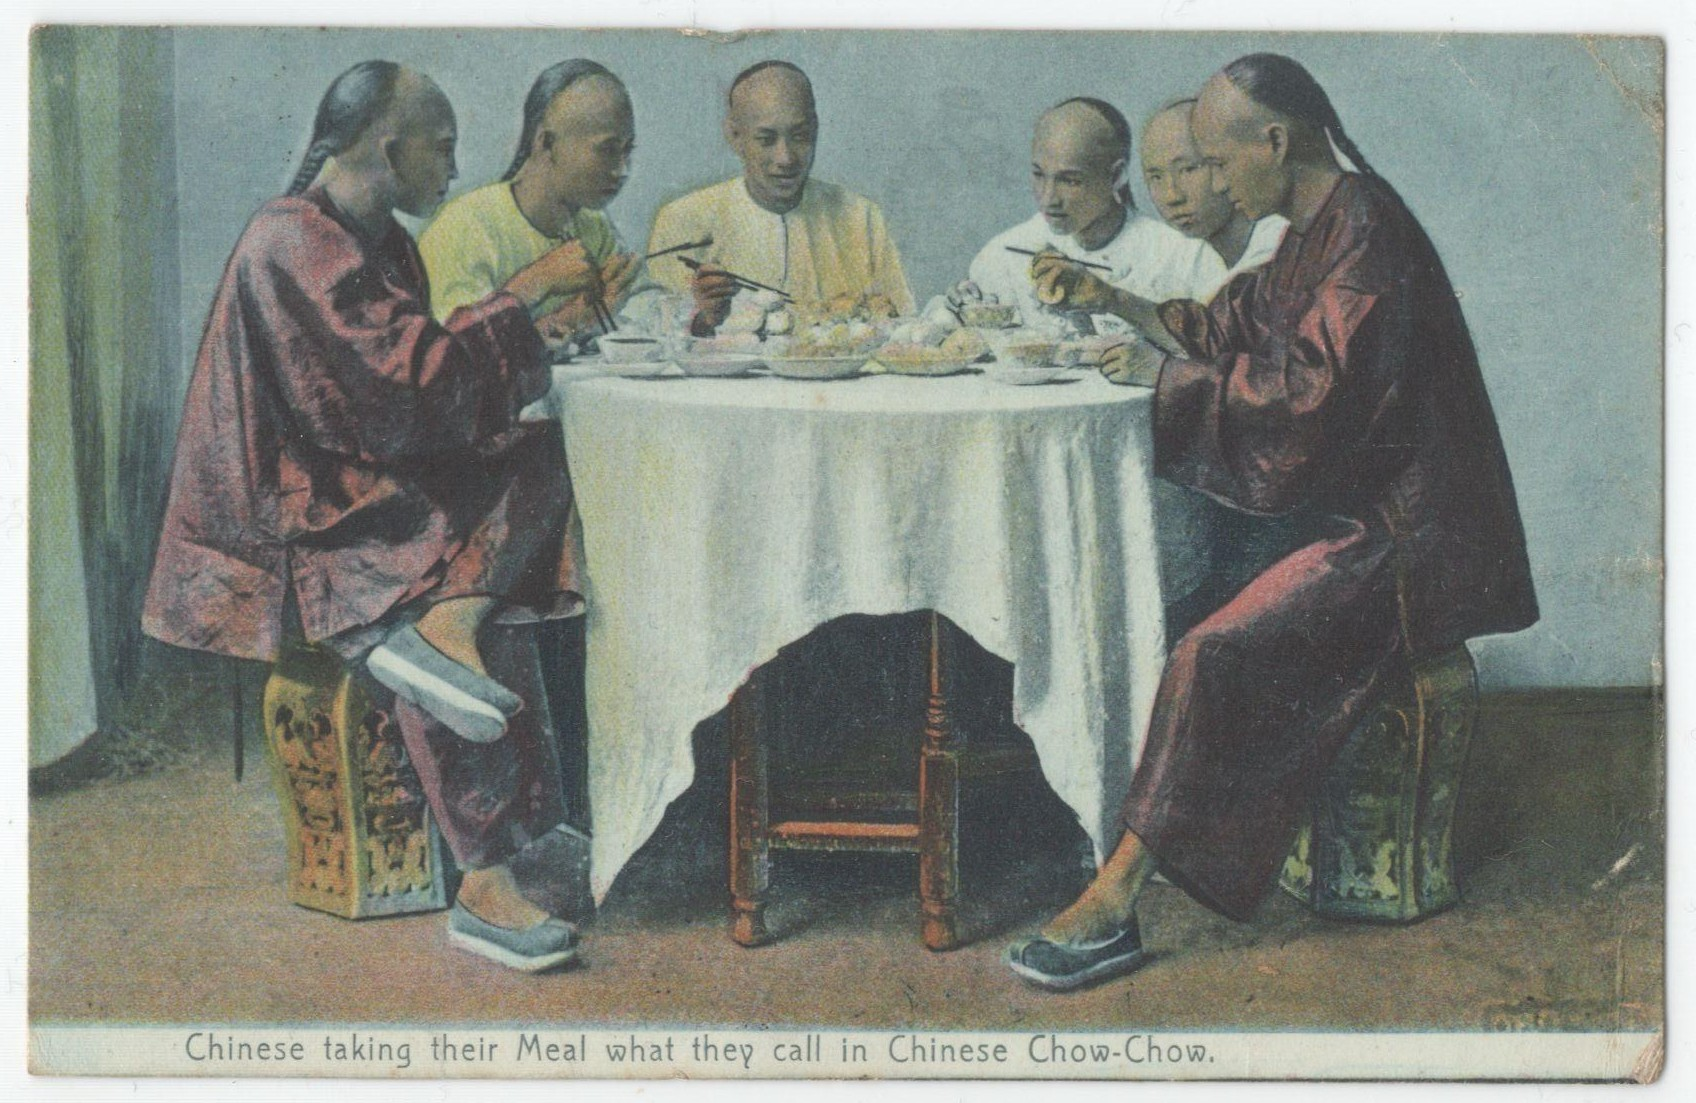 Lot 2 - CHINESE TAKING THEIR MEAL CHOW-CHOW - POSTED POSTCARD TEMPORARY P.O. CHOWRASTA 1908